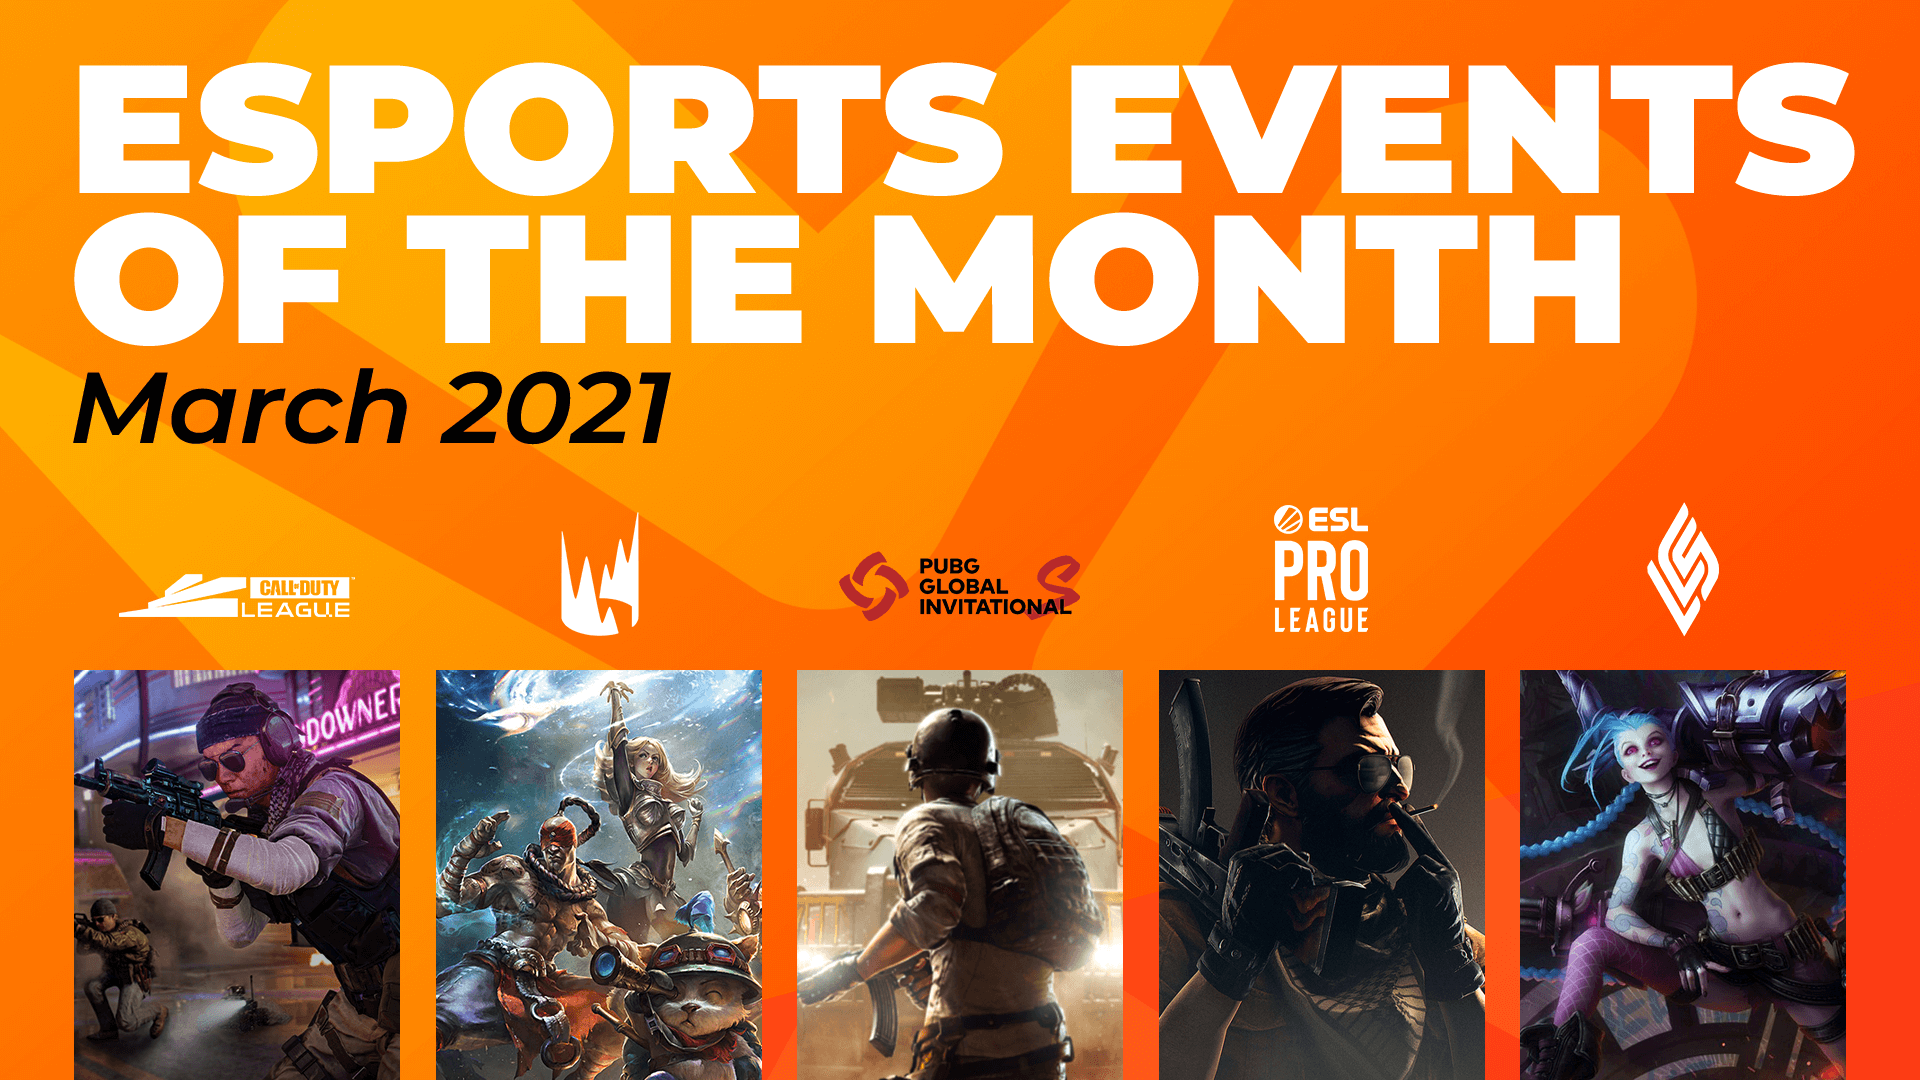 Esports Events to Watch This Month (March)